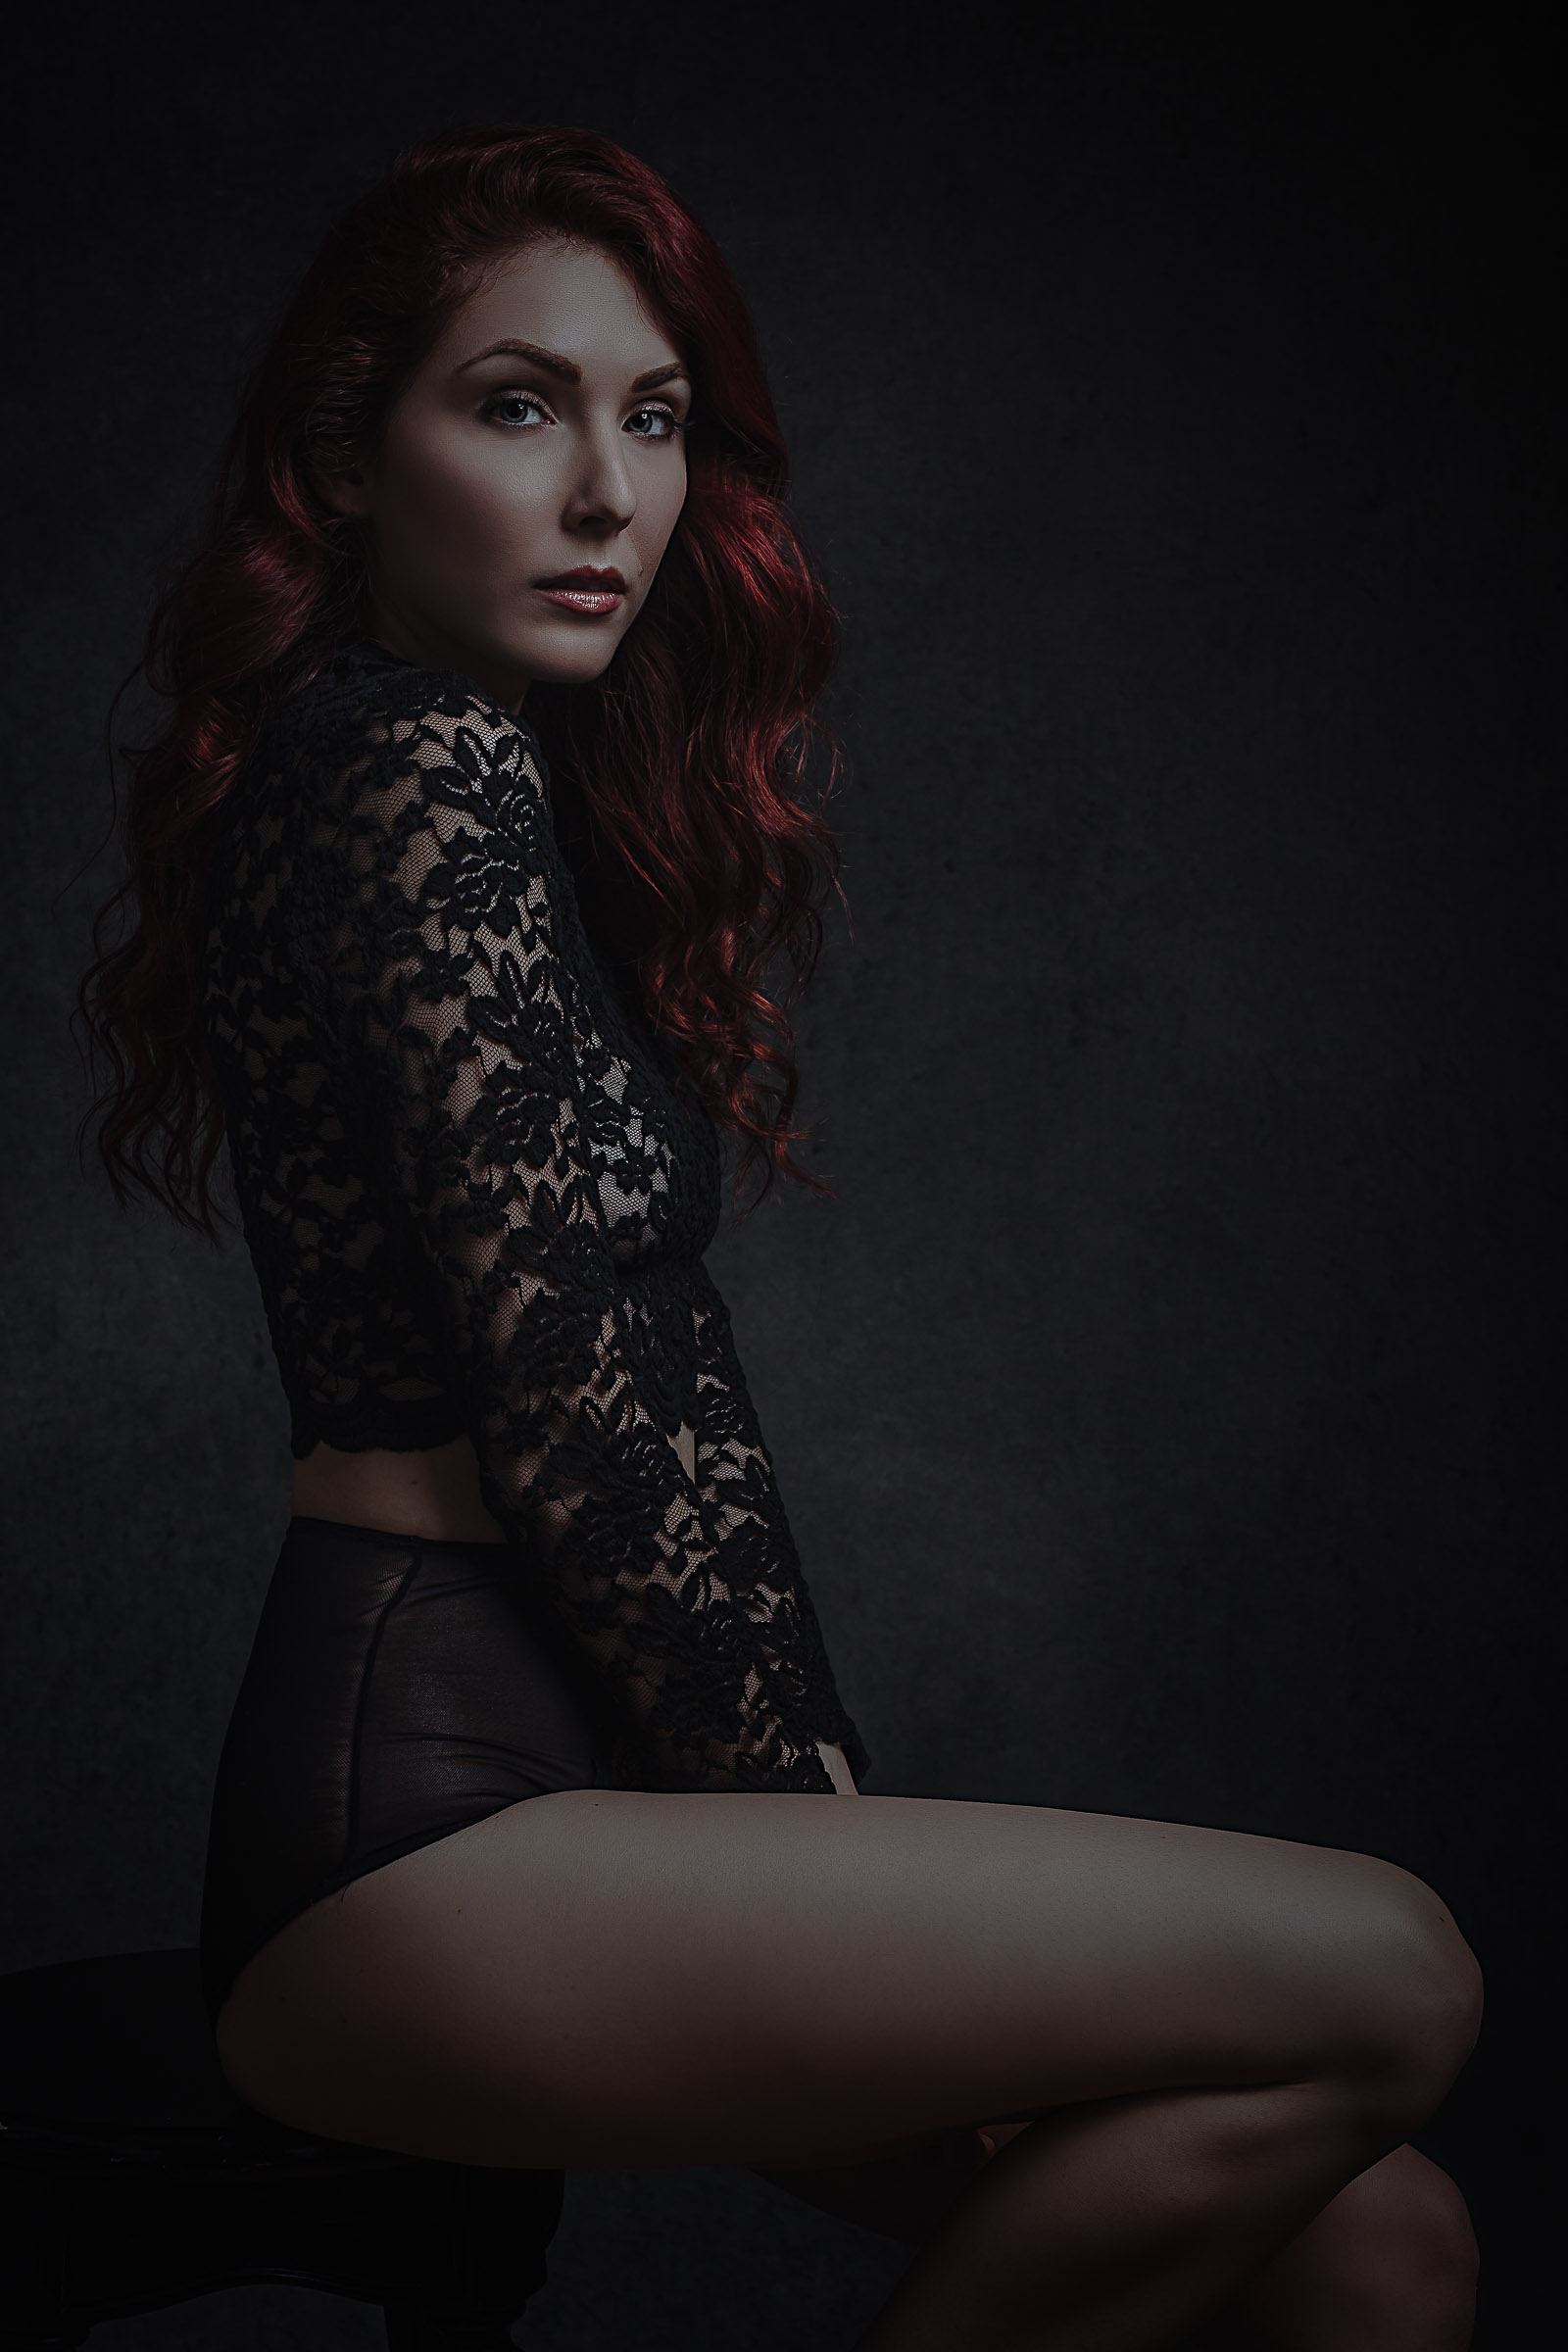 Beautiful redhead wearing lace top in Toronto Boudoir Portrait